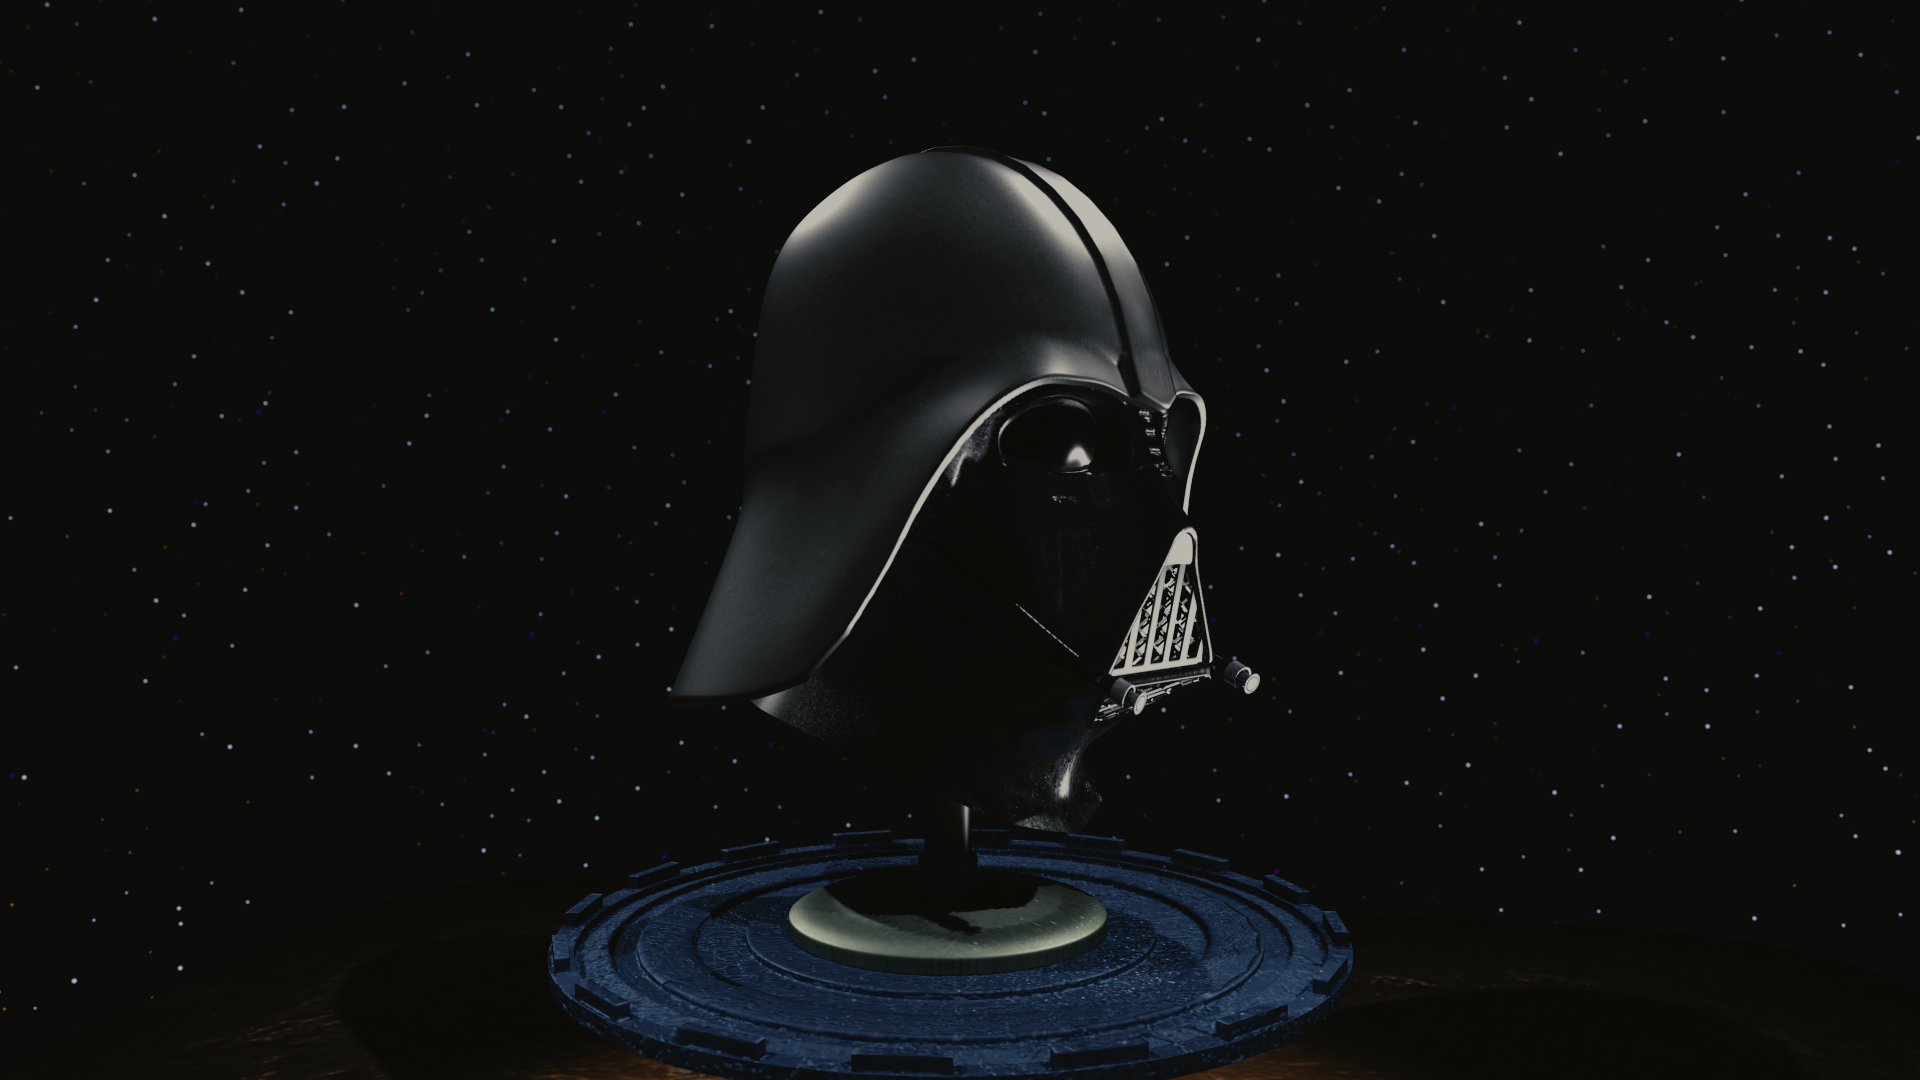 Darth vader, Star wars, die Star Wars, Helm, Raum - Wallpaper HD - Prof.-falken.com